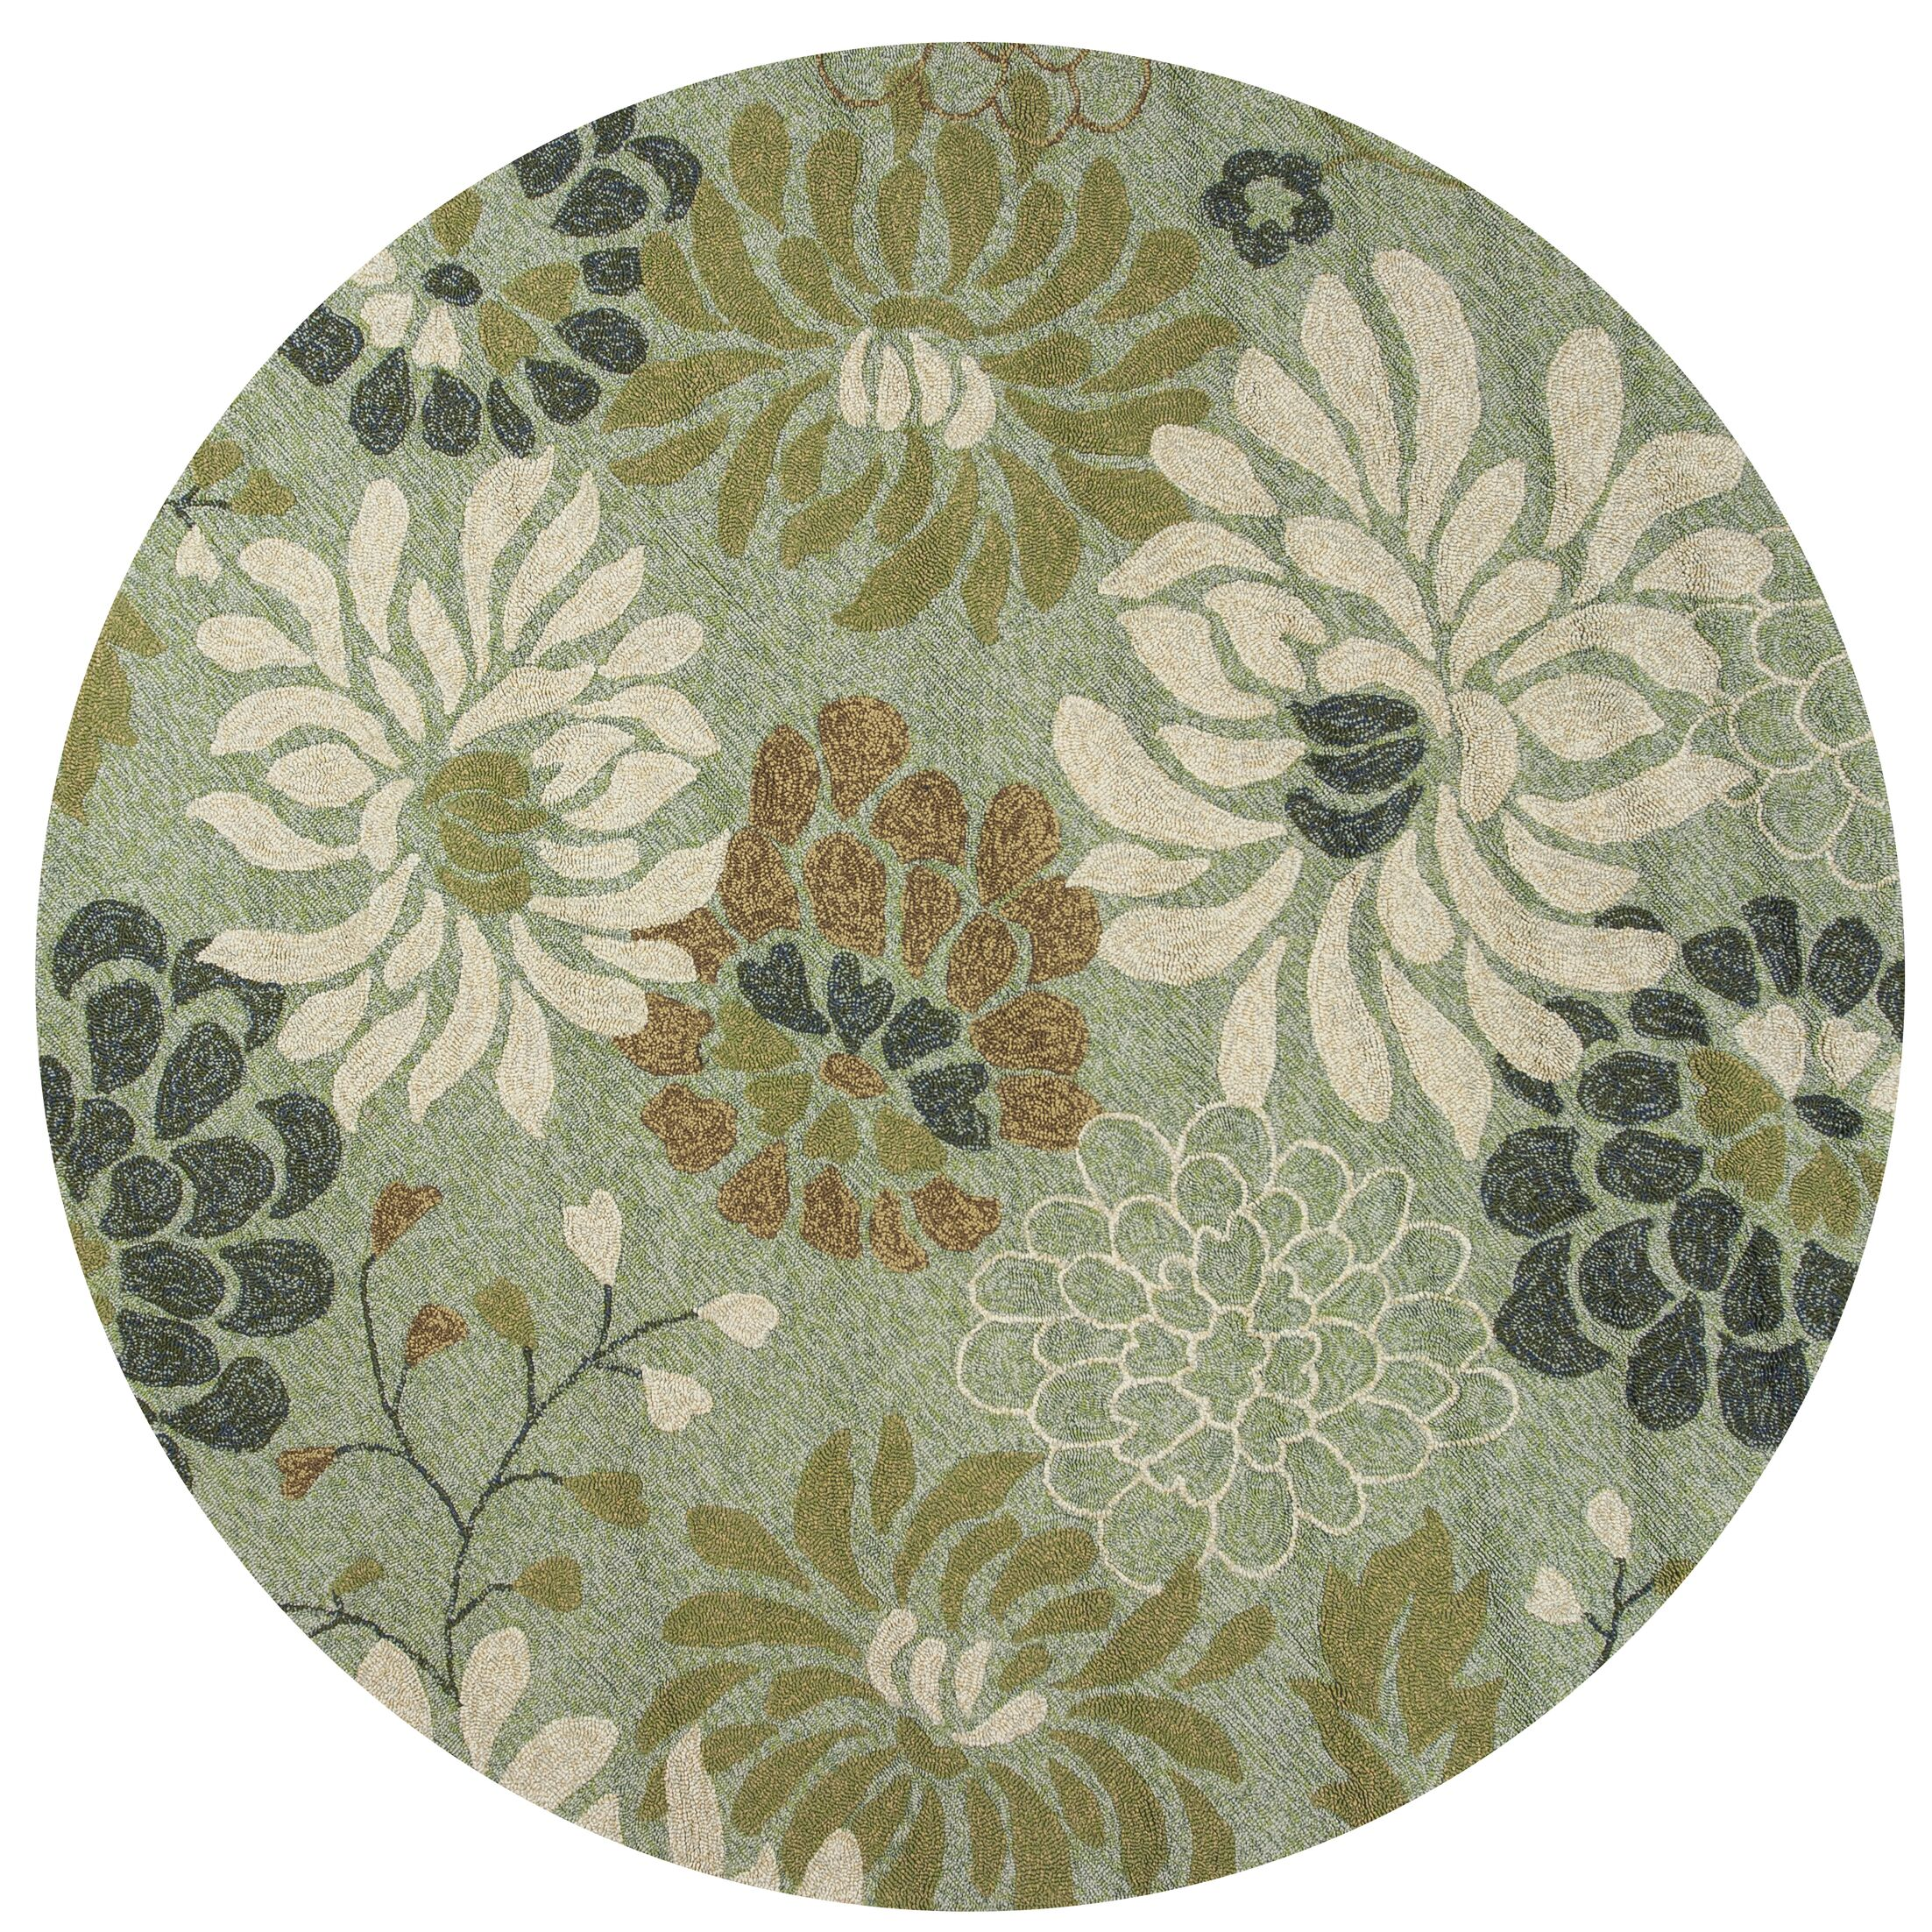 Winsford Seafoam Silhouette Indoor/Outdoor Area Rug Rug Size: Round 7'6